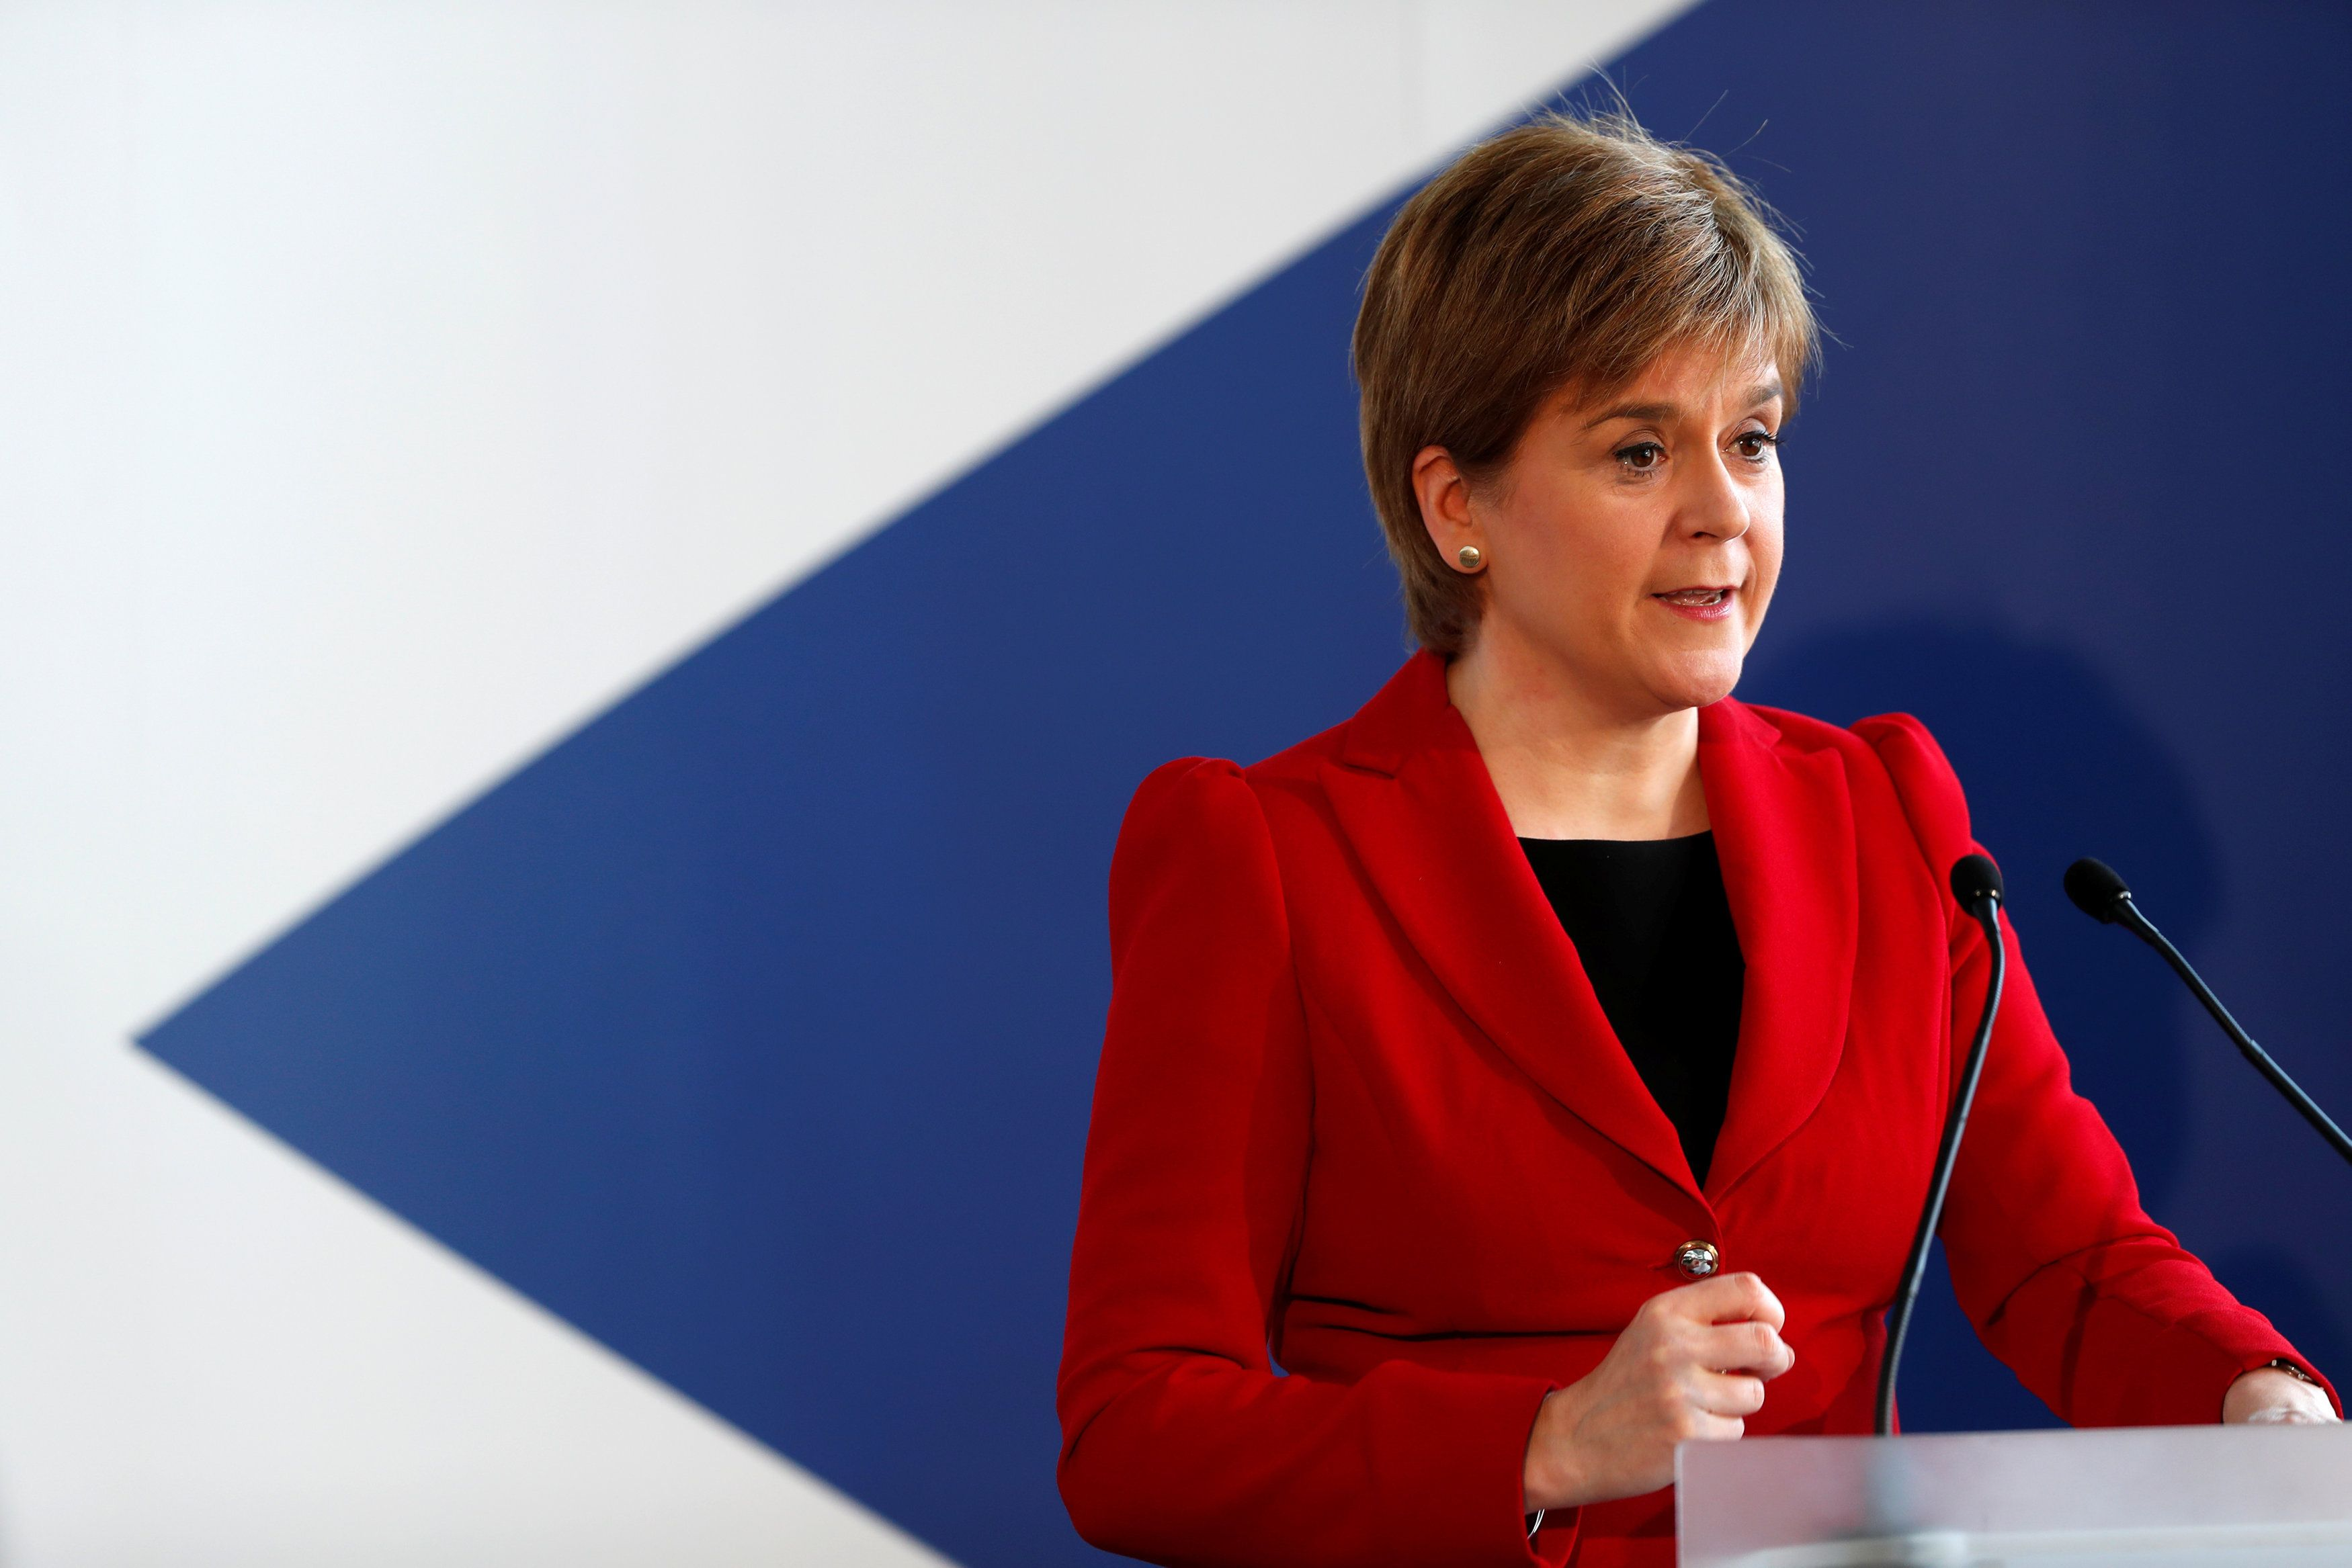 FMQs: Nicola Sturgeon takes aim at Scottish Labour's internal strife